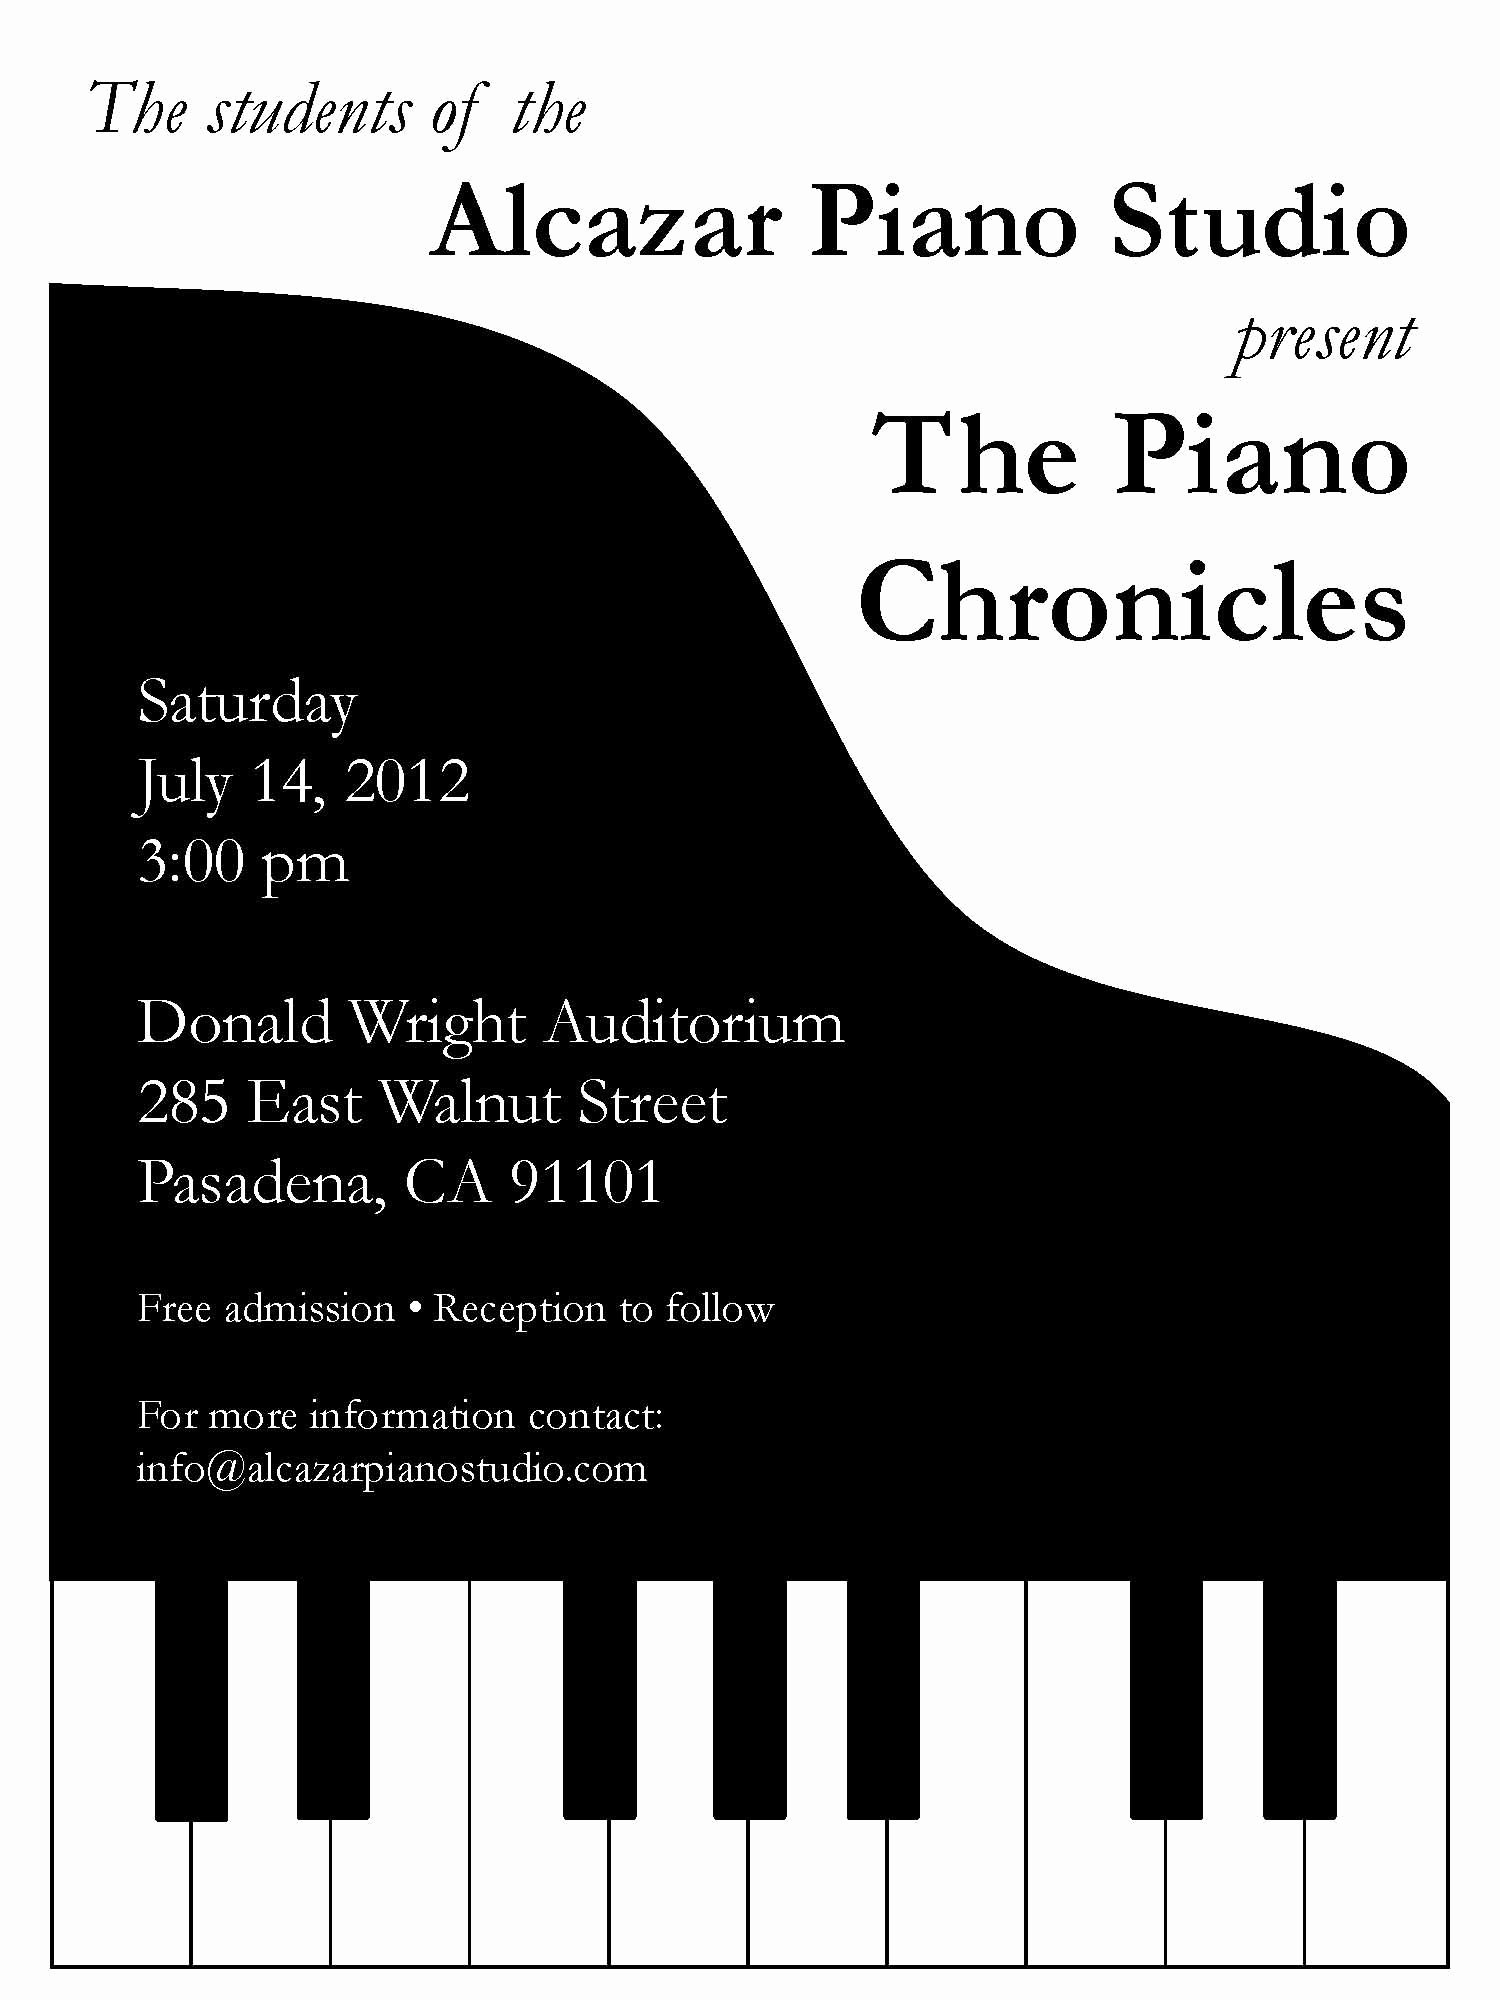 Concert Program Template Free New Piano Recital Invitation Stuff I Make